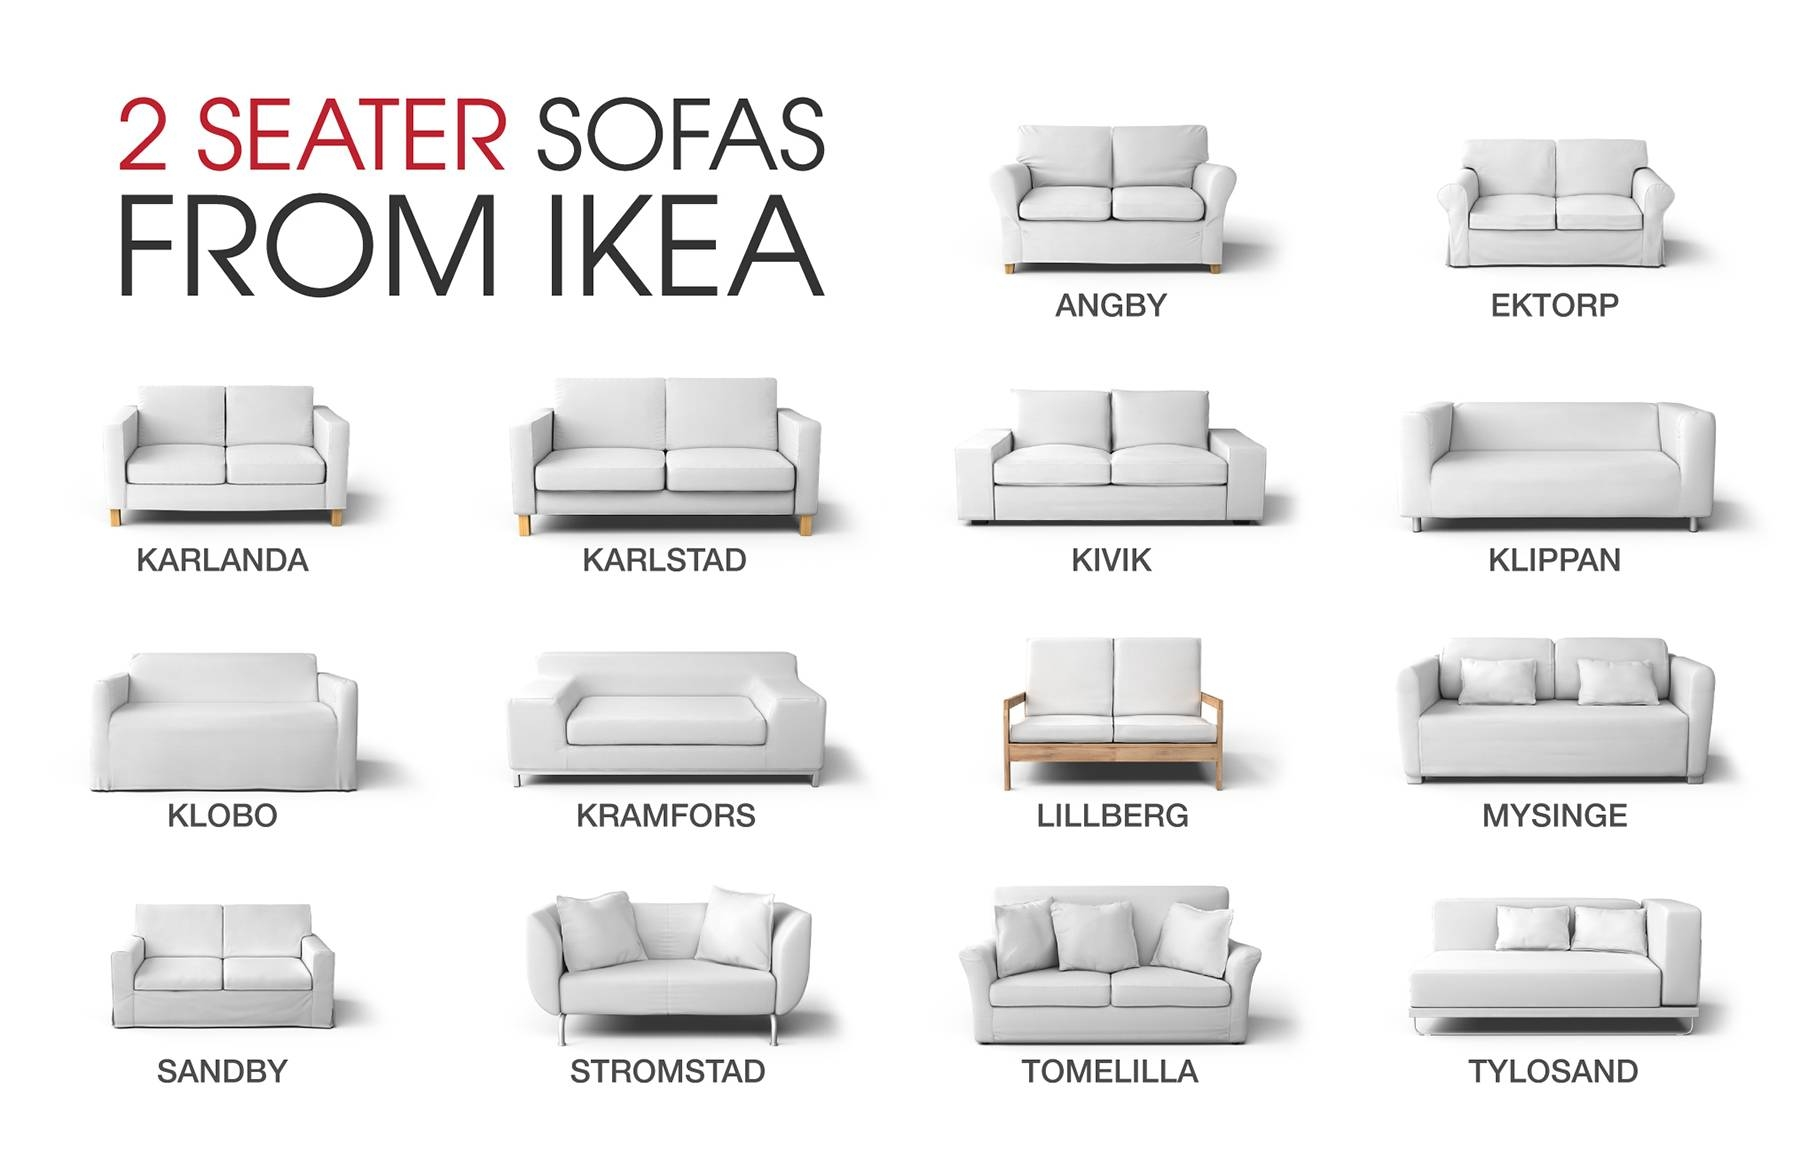 Ikea Sofa Covers For Discontinued Ikea Couch Models intended for 2 Seat Sectional Sofas (Image 17 of 30)